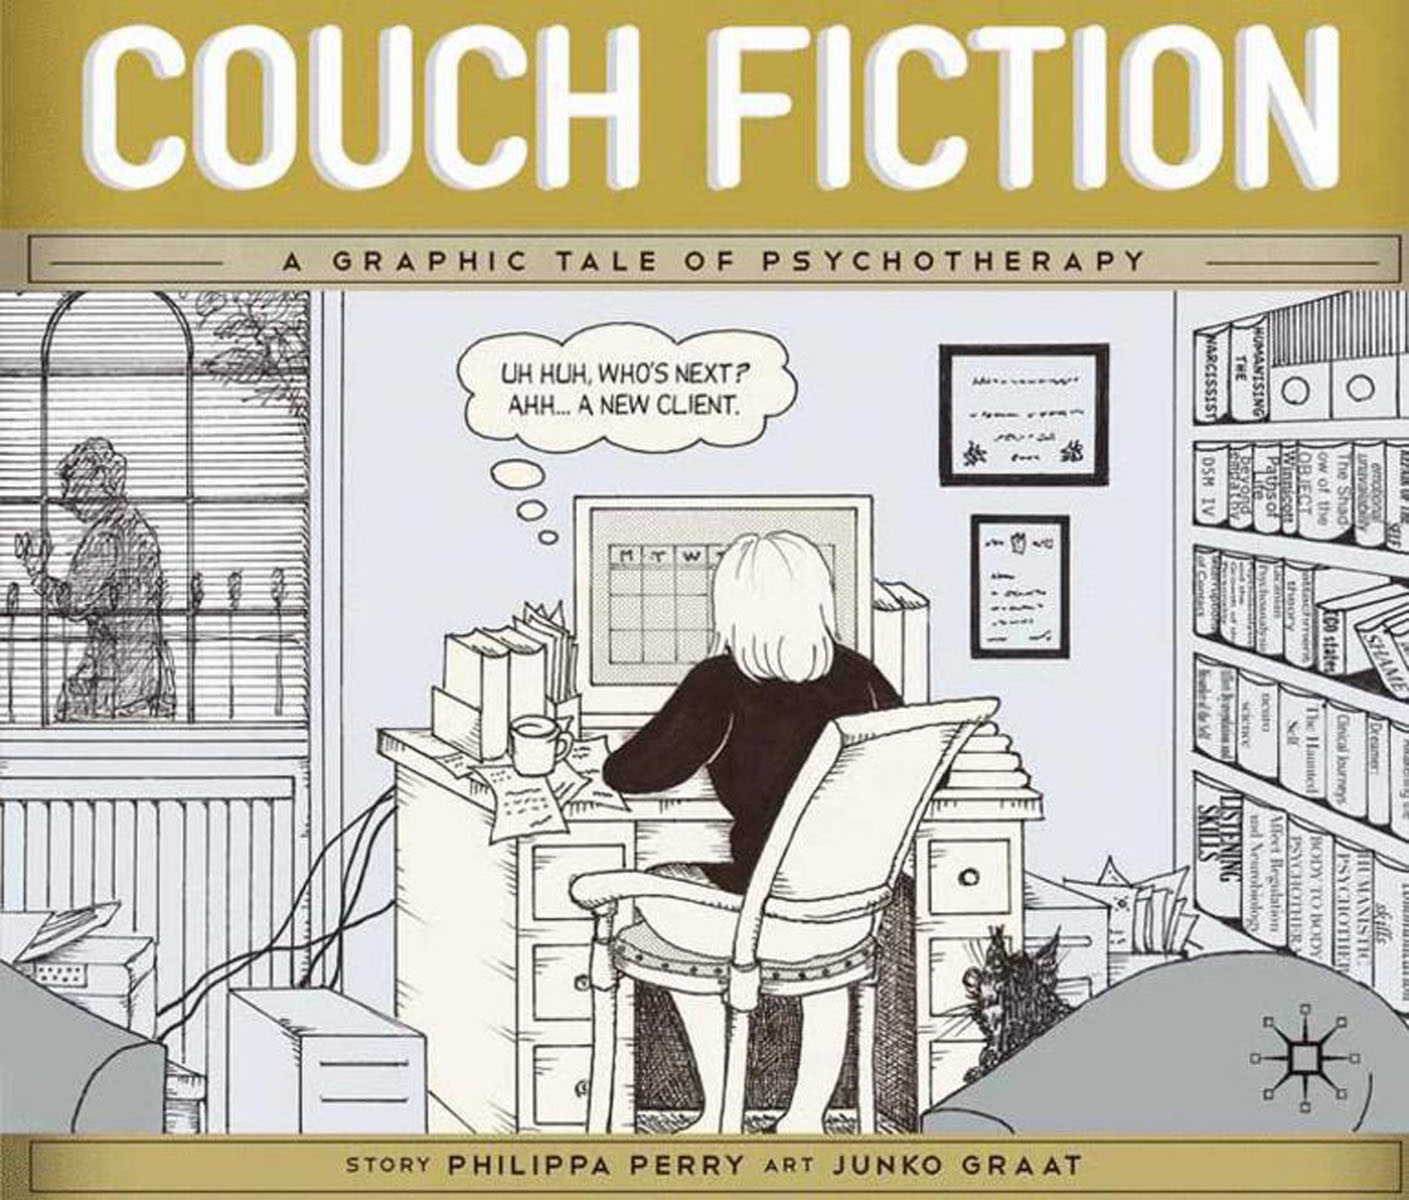 Couch Fiction faulks on fiction